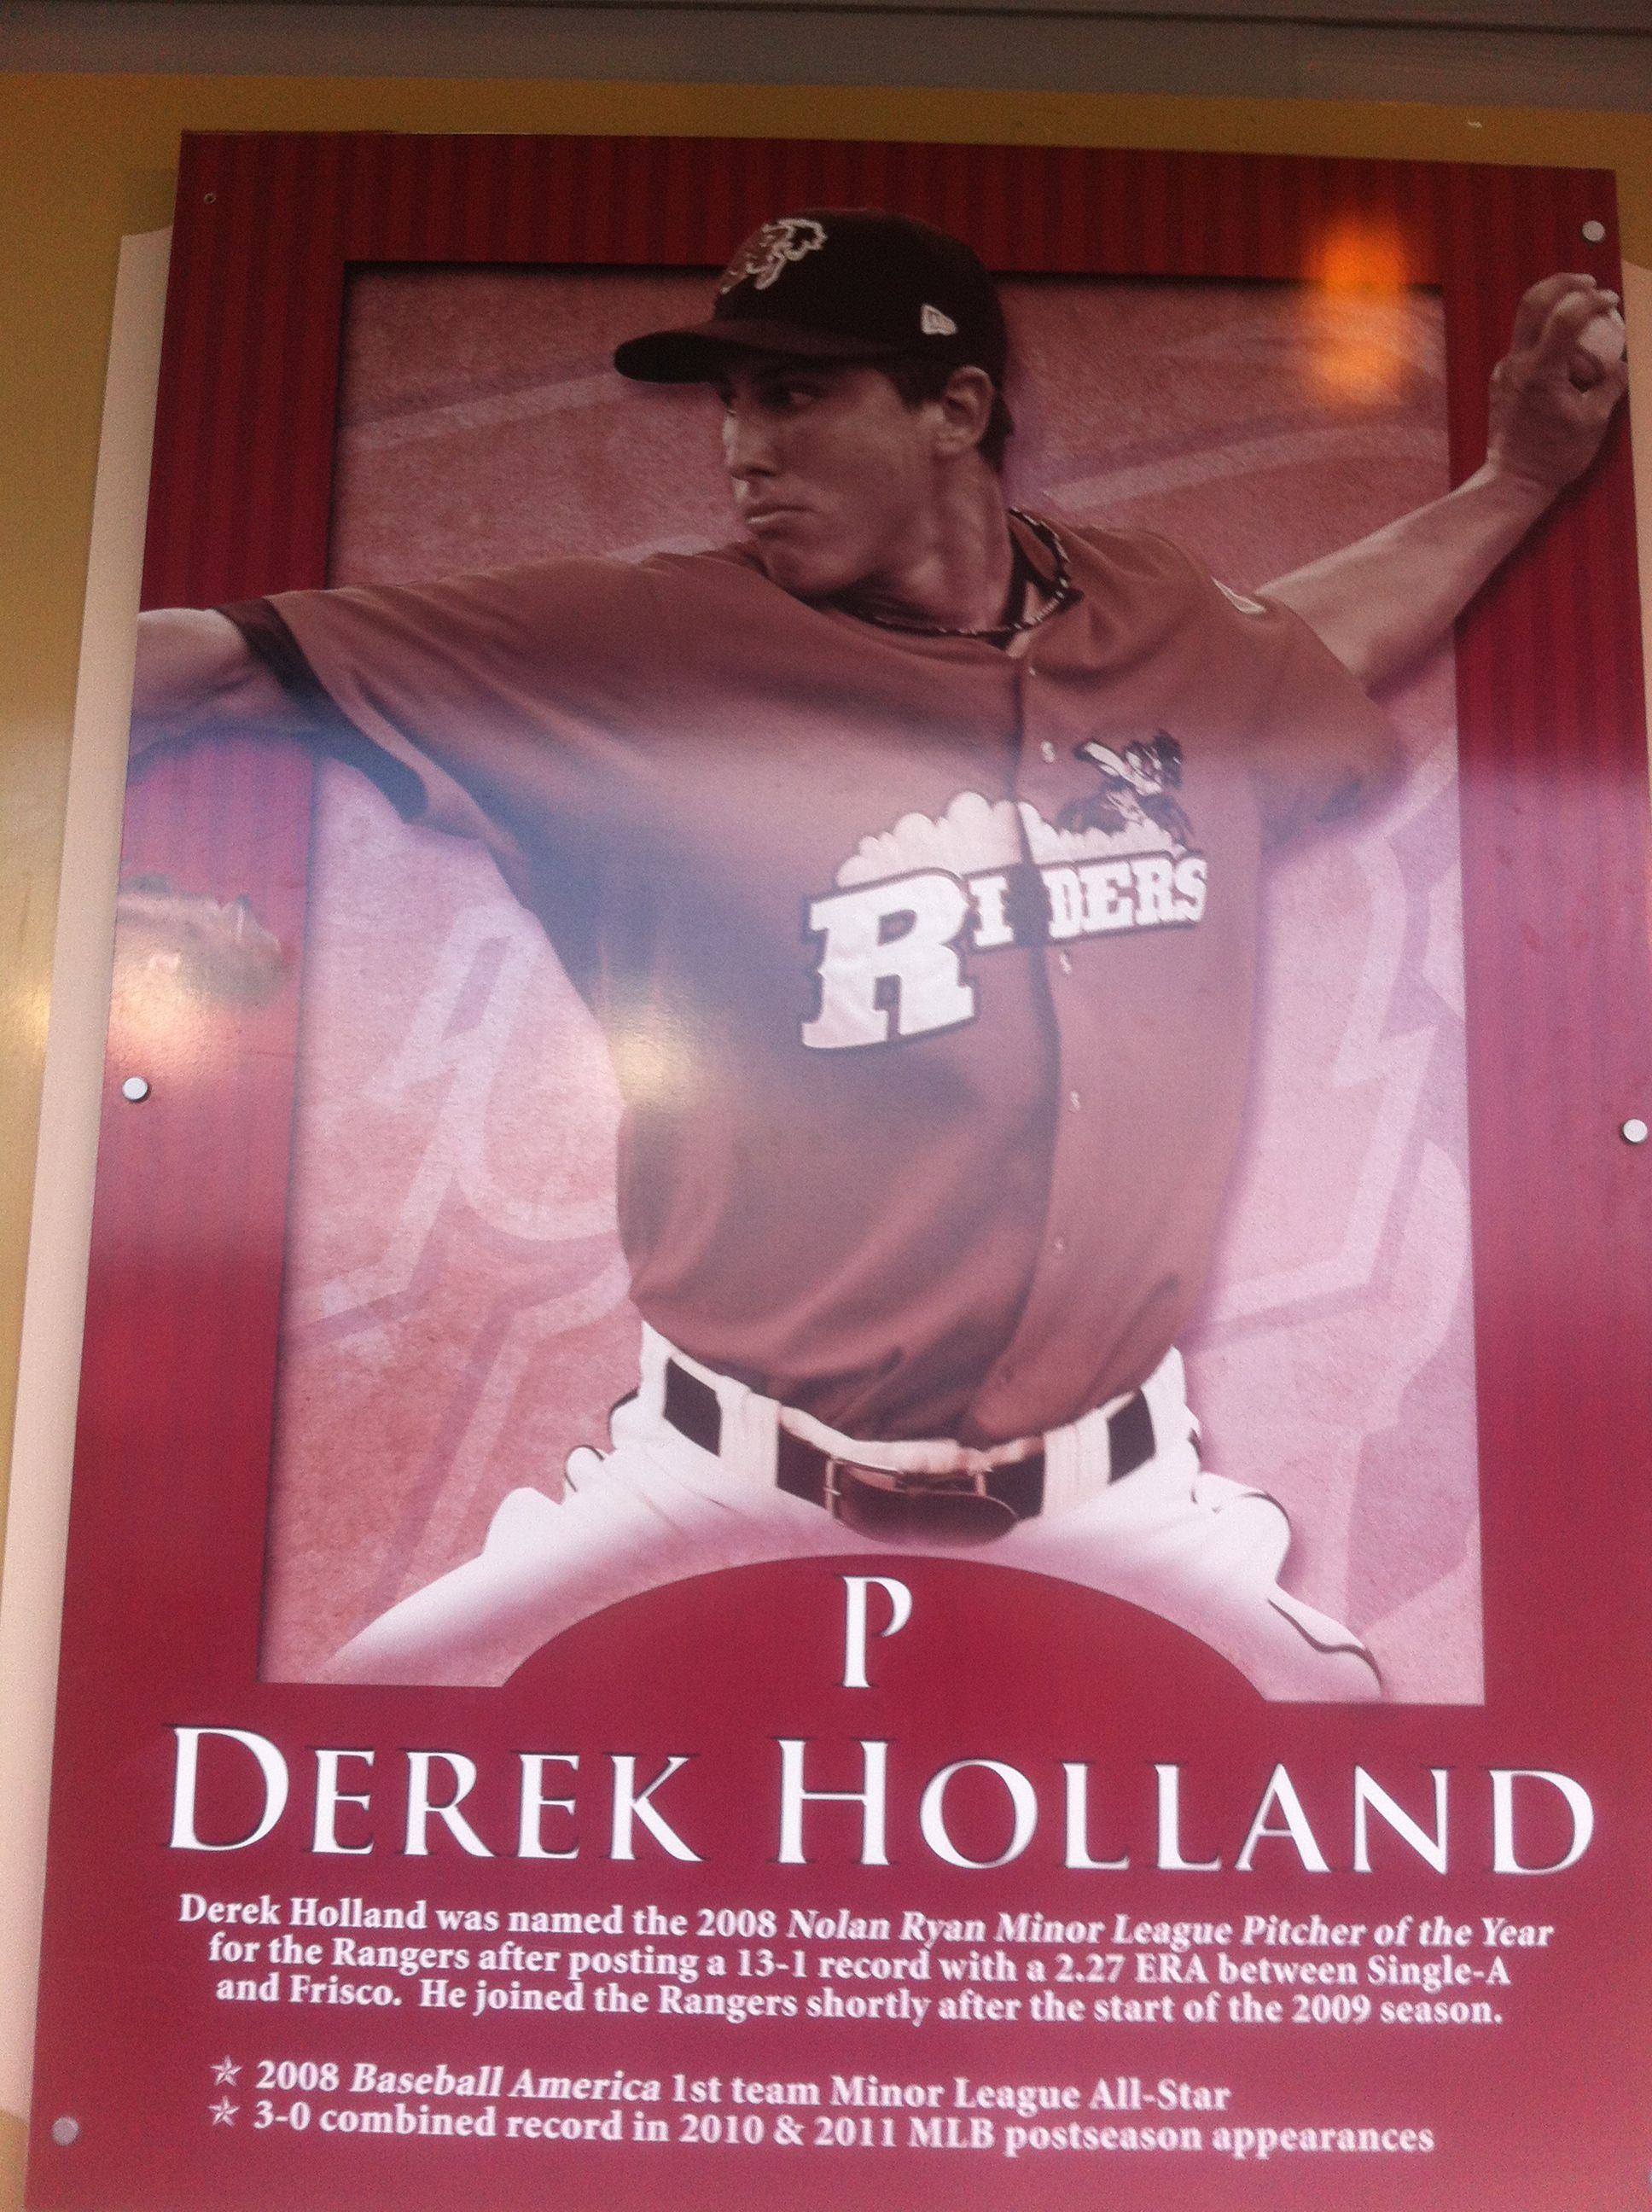 Derek holland now everybody knows who to bring to my